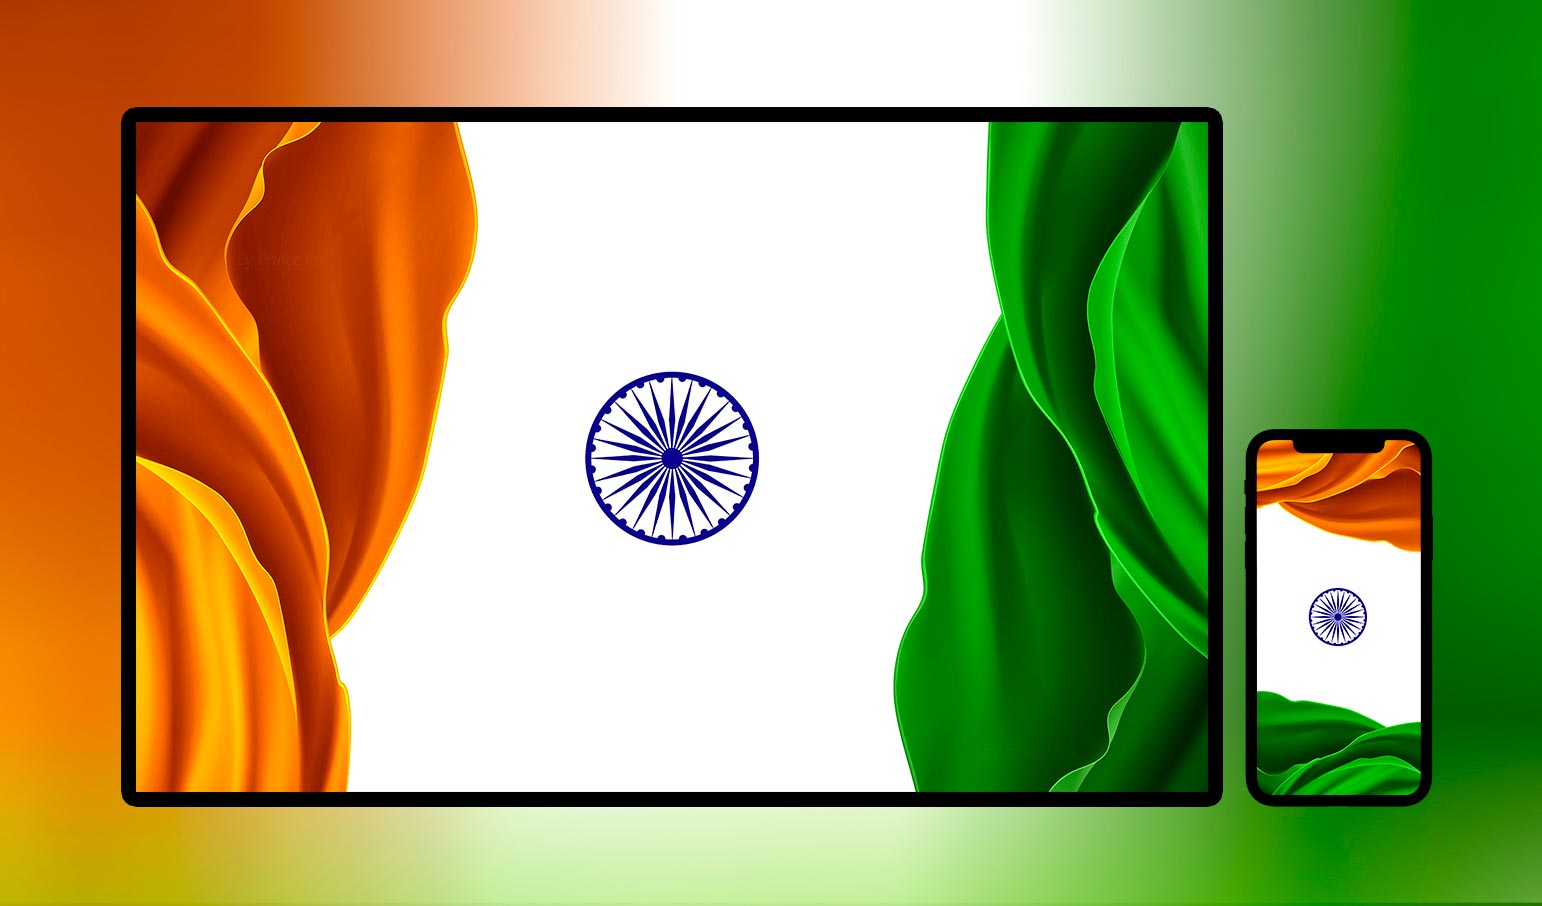 Download-Indian-flag-wallpaper